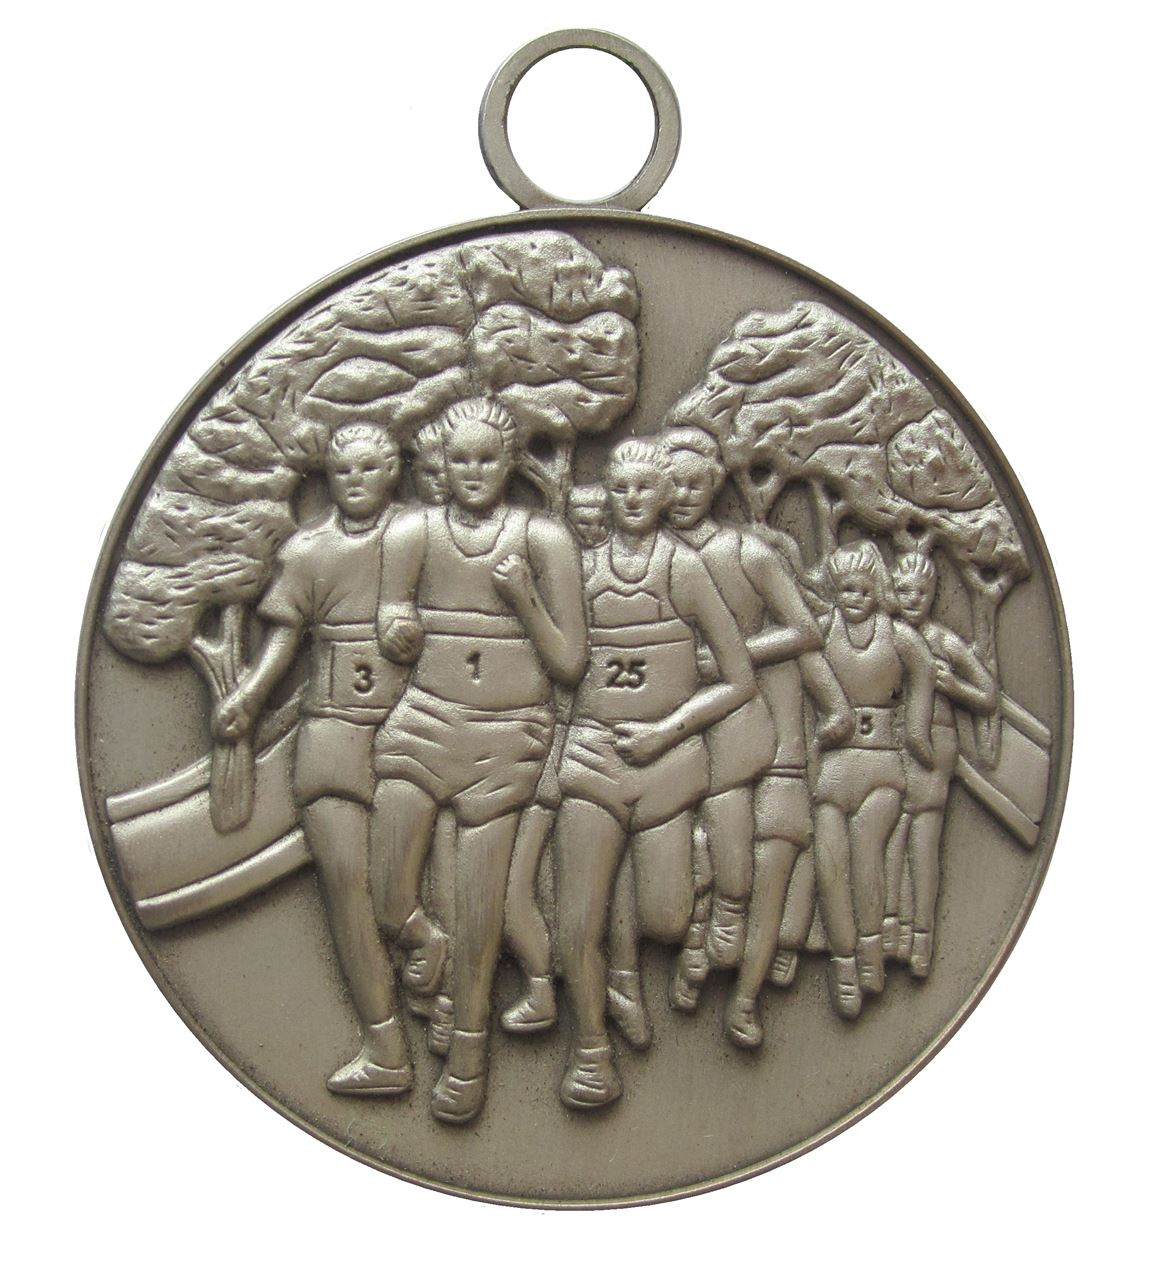 Silver  Economy Running Medal (size: 50mm) - MAR001E